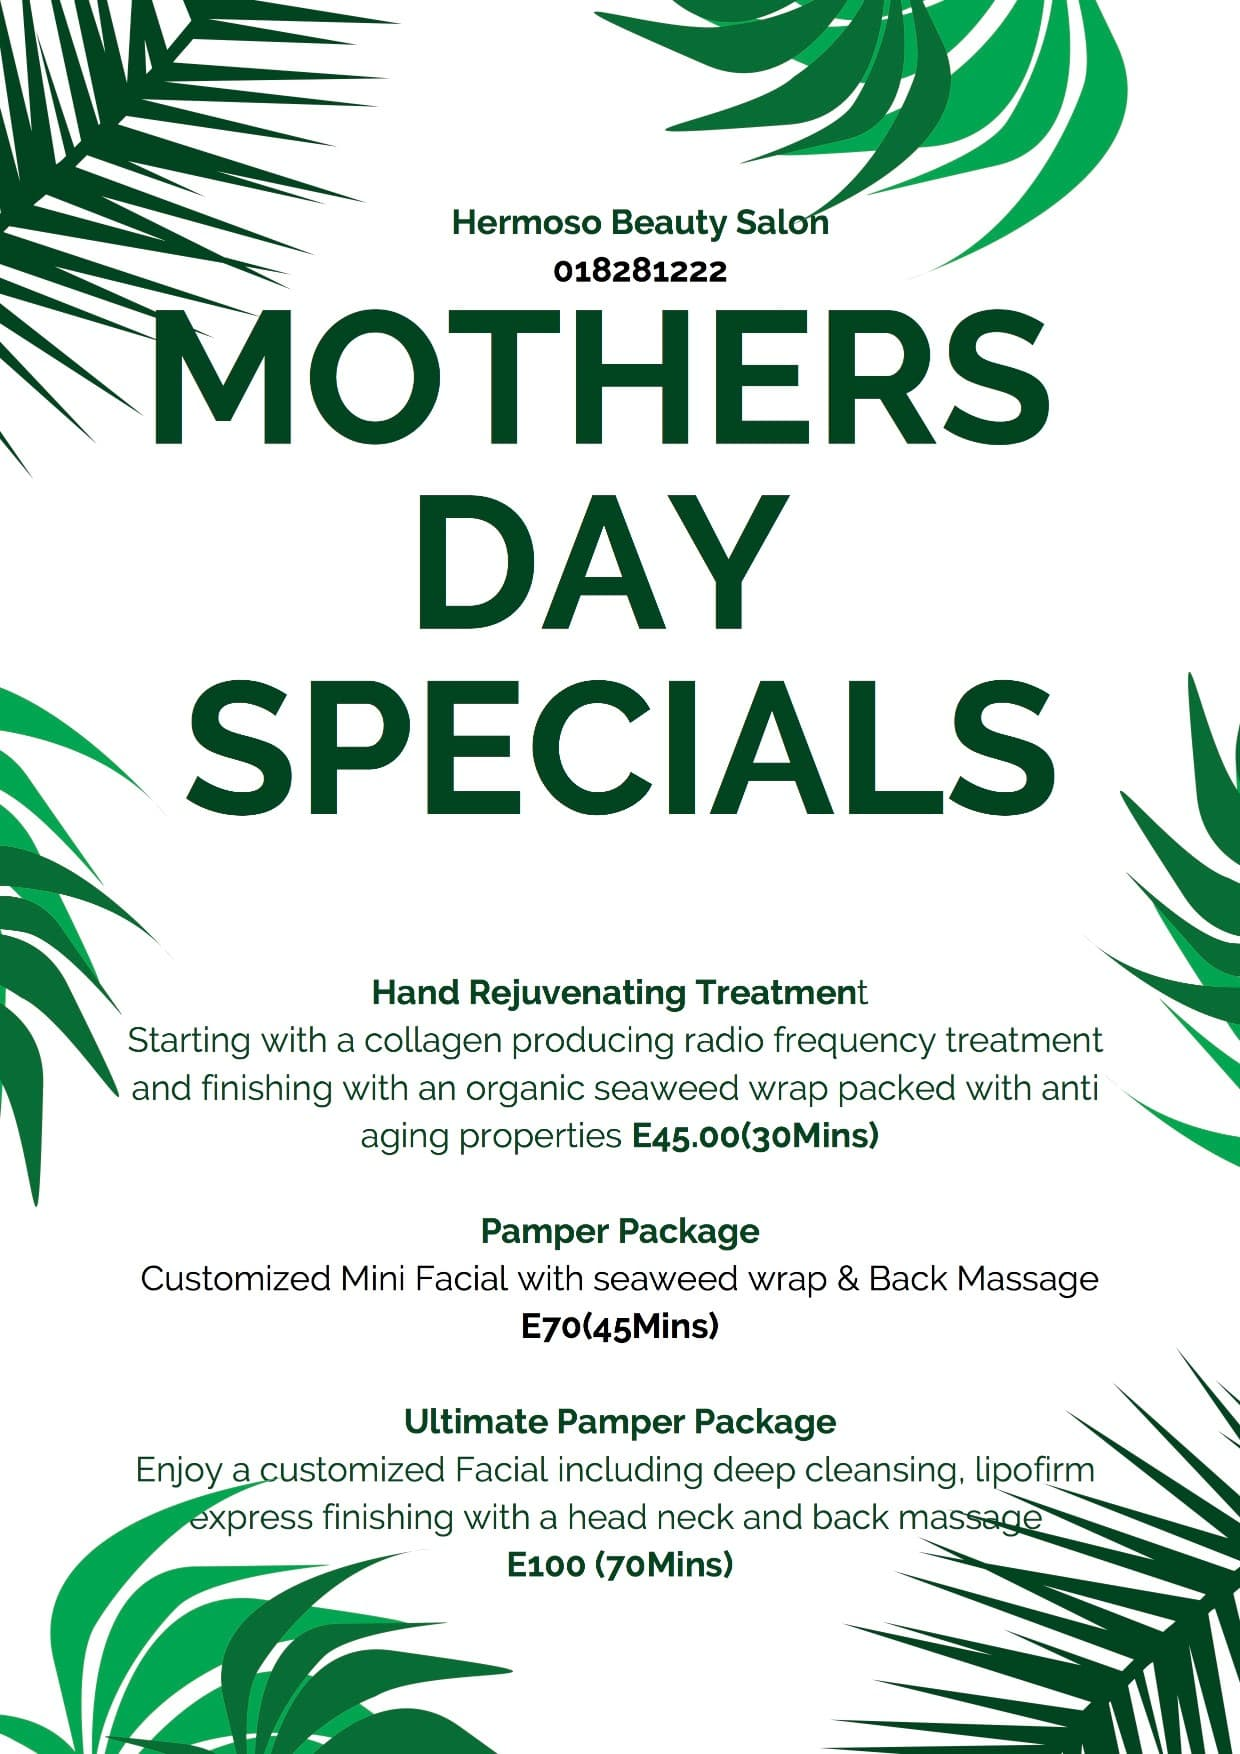 Offer - Mother's Day Special